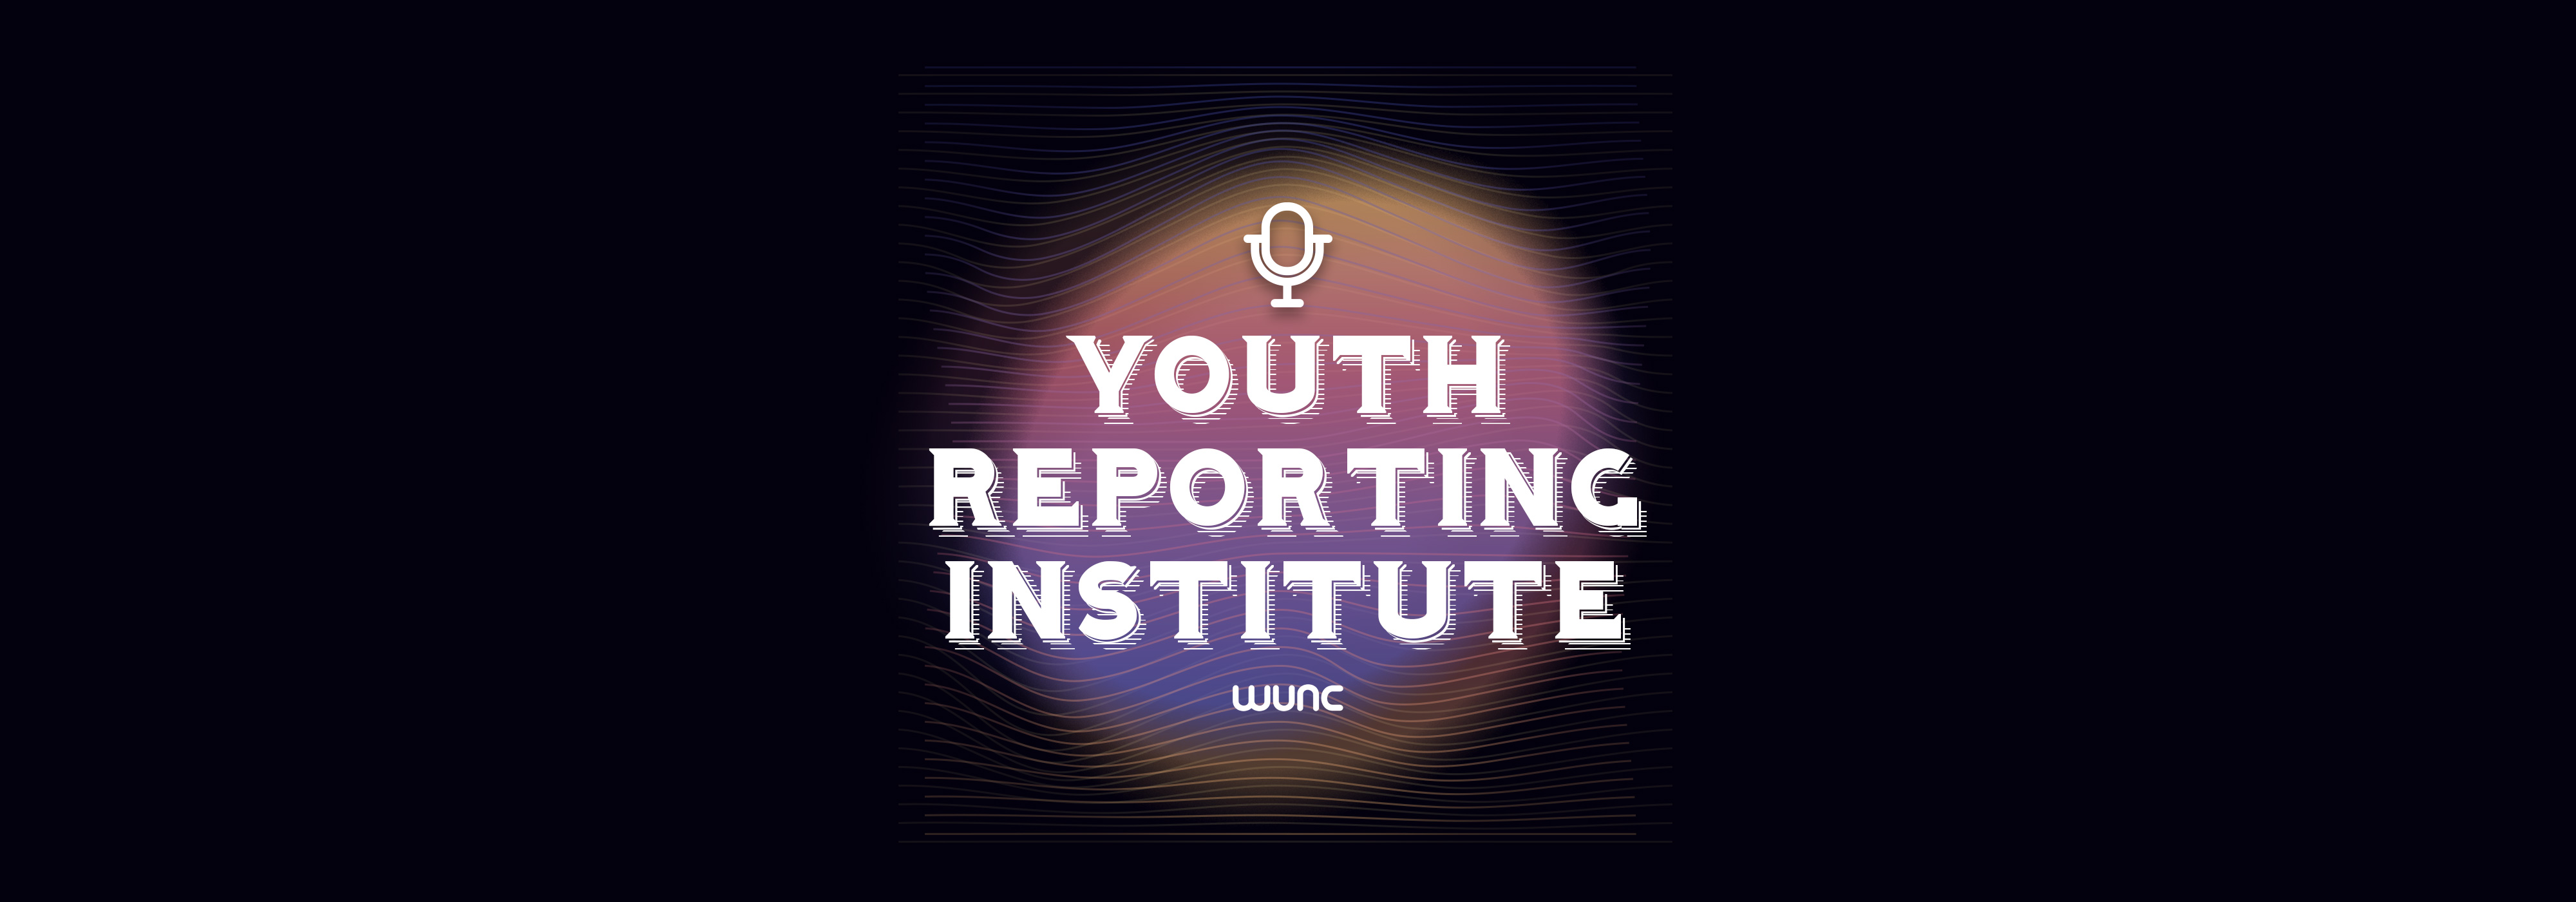 Youth Reporting Institute Logo